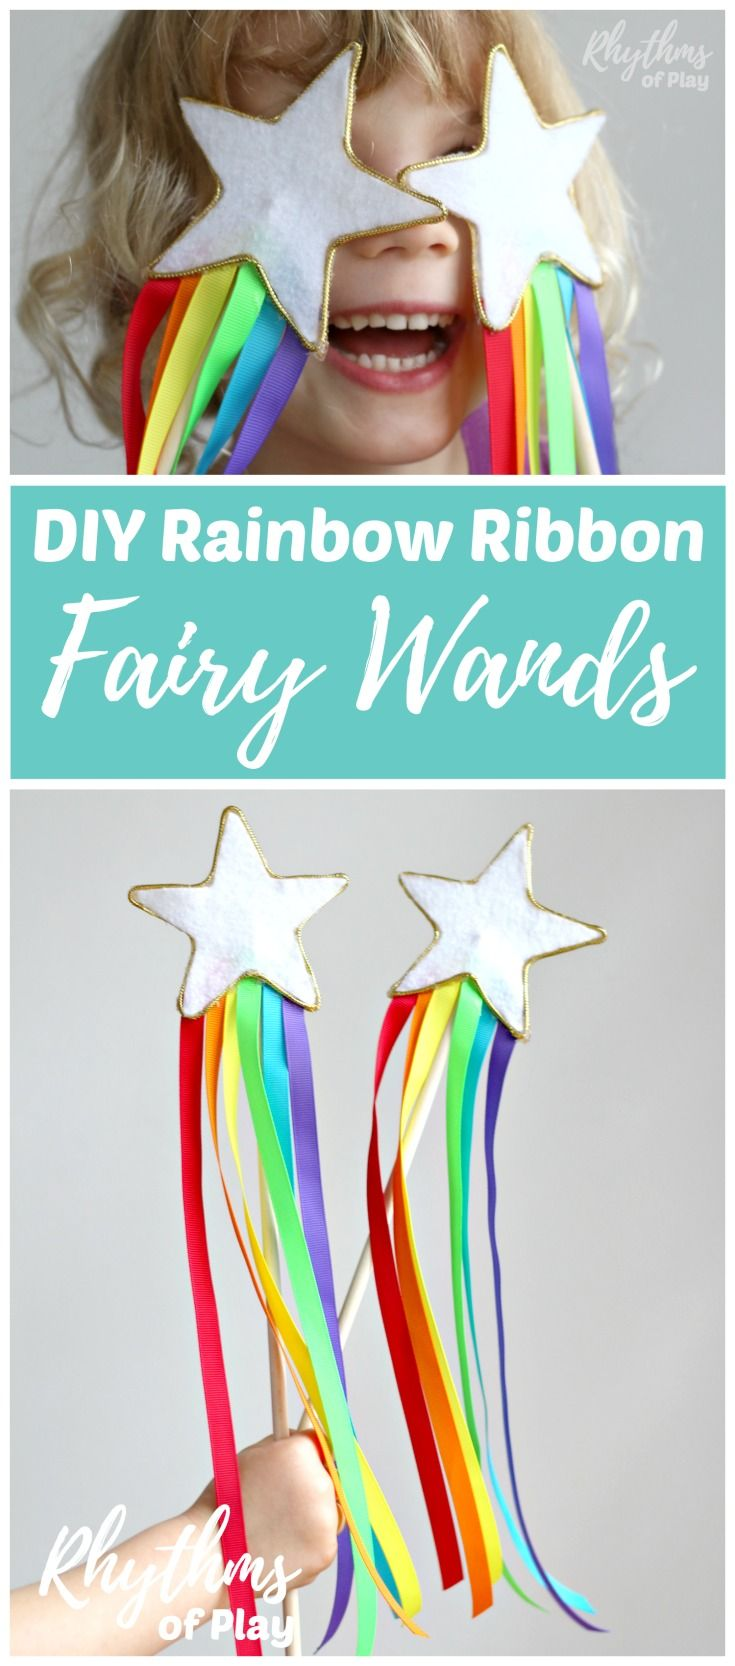 DIY Rainbow Ribbon Fairy Wands for Kids! Learn how to make this no-sew felt craft idea with rainbow streamers perfect for children of all ages. Use them as a dress up prop for pretend or imaginative play. Magic star fairy princess wands are a perfect bir